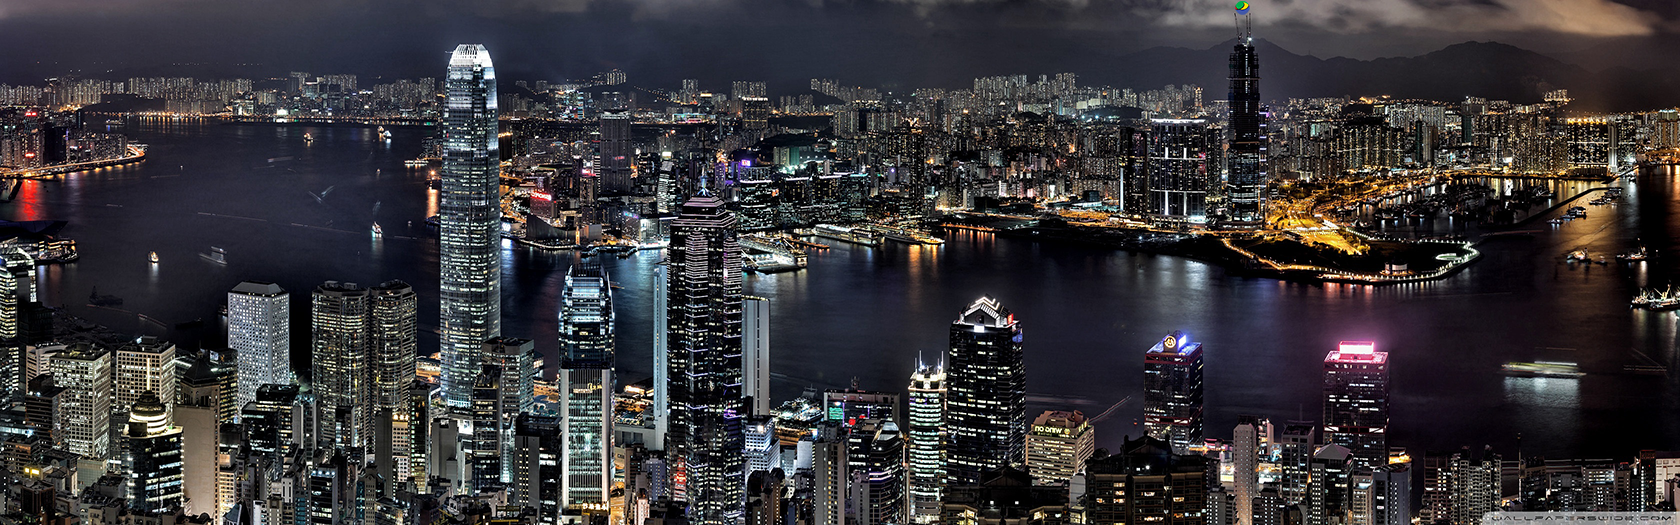 hong_kong__china-wallpaper-3360x10501